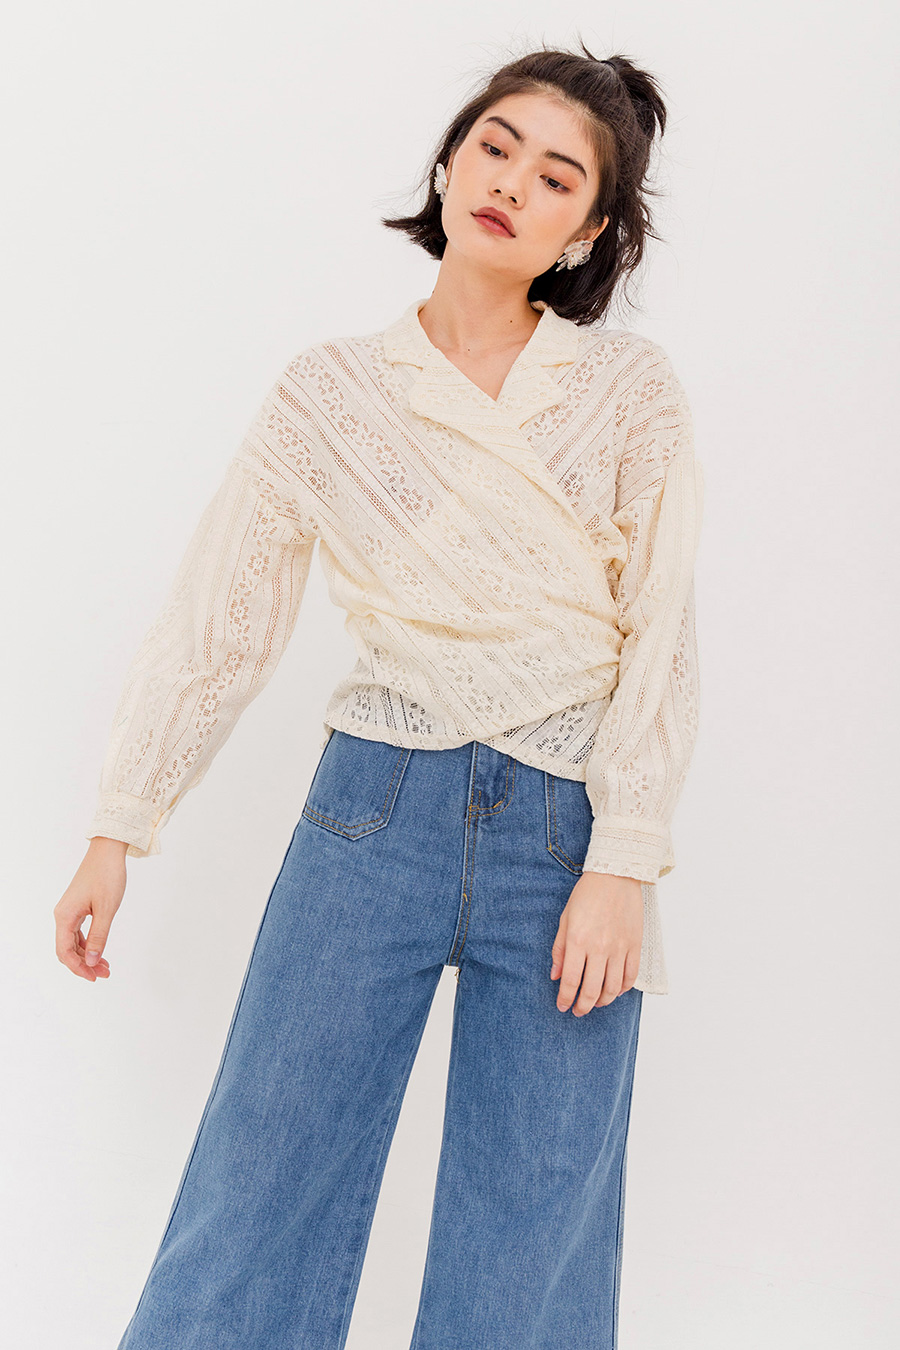 *SALE* DIANA CROCHET WRAP BLOUSE - CREAM